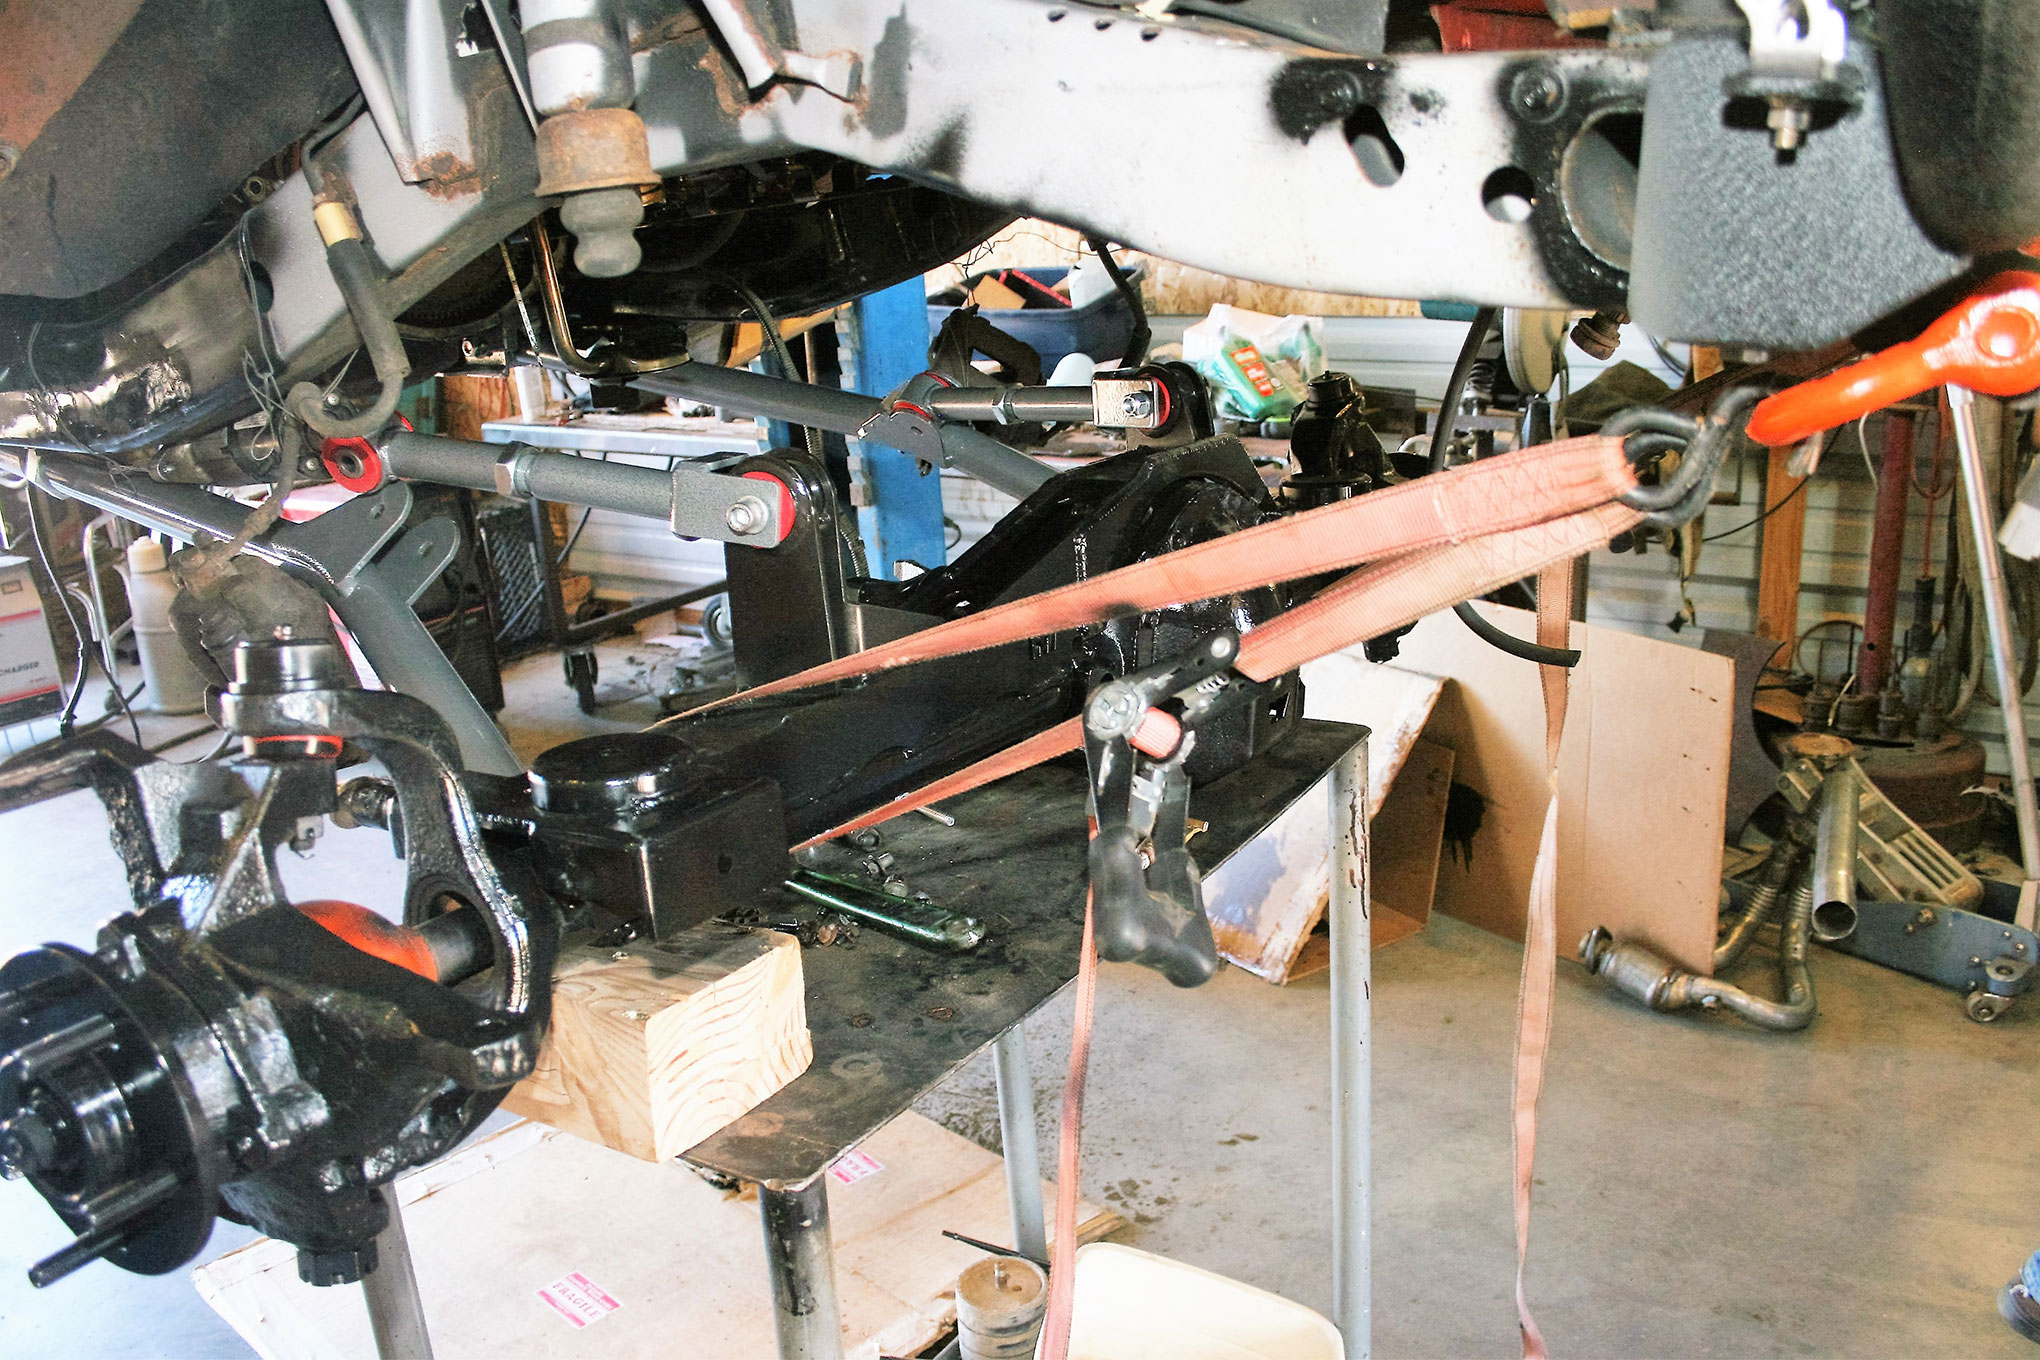 Just as we did with the front axle, adjustable straps were used to hold and position the rear axle in place underneath the Jeep. This allowed us to fine-tune the position of the axlehousing while bolting all of the Y-link components into place.